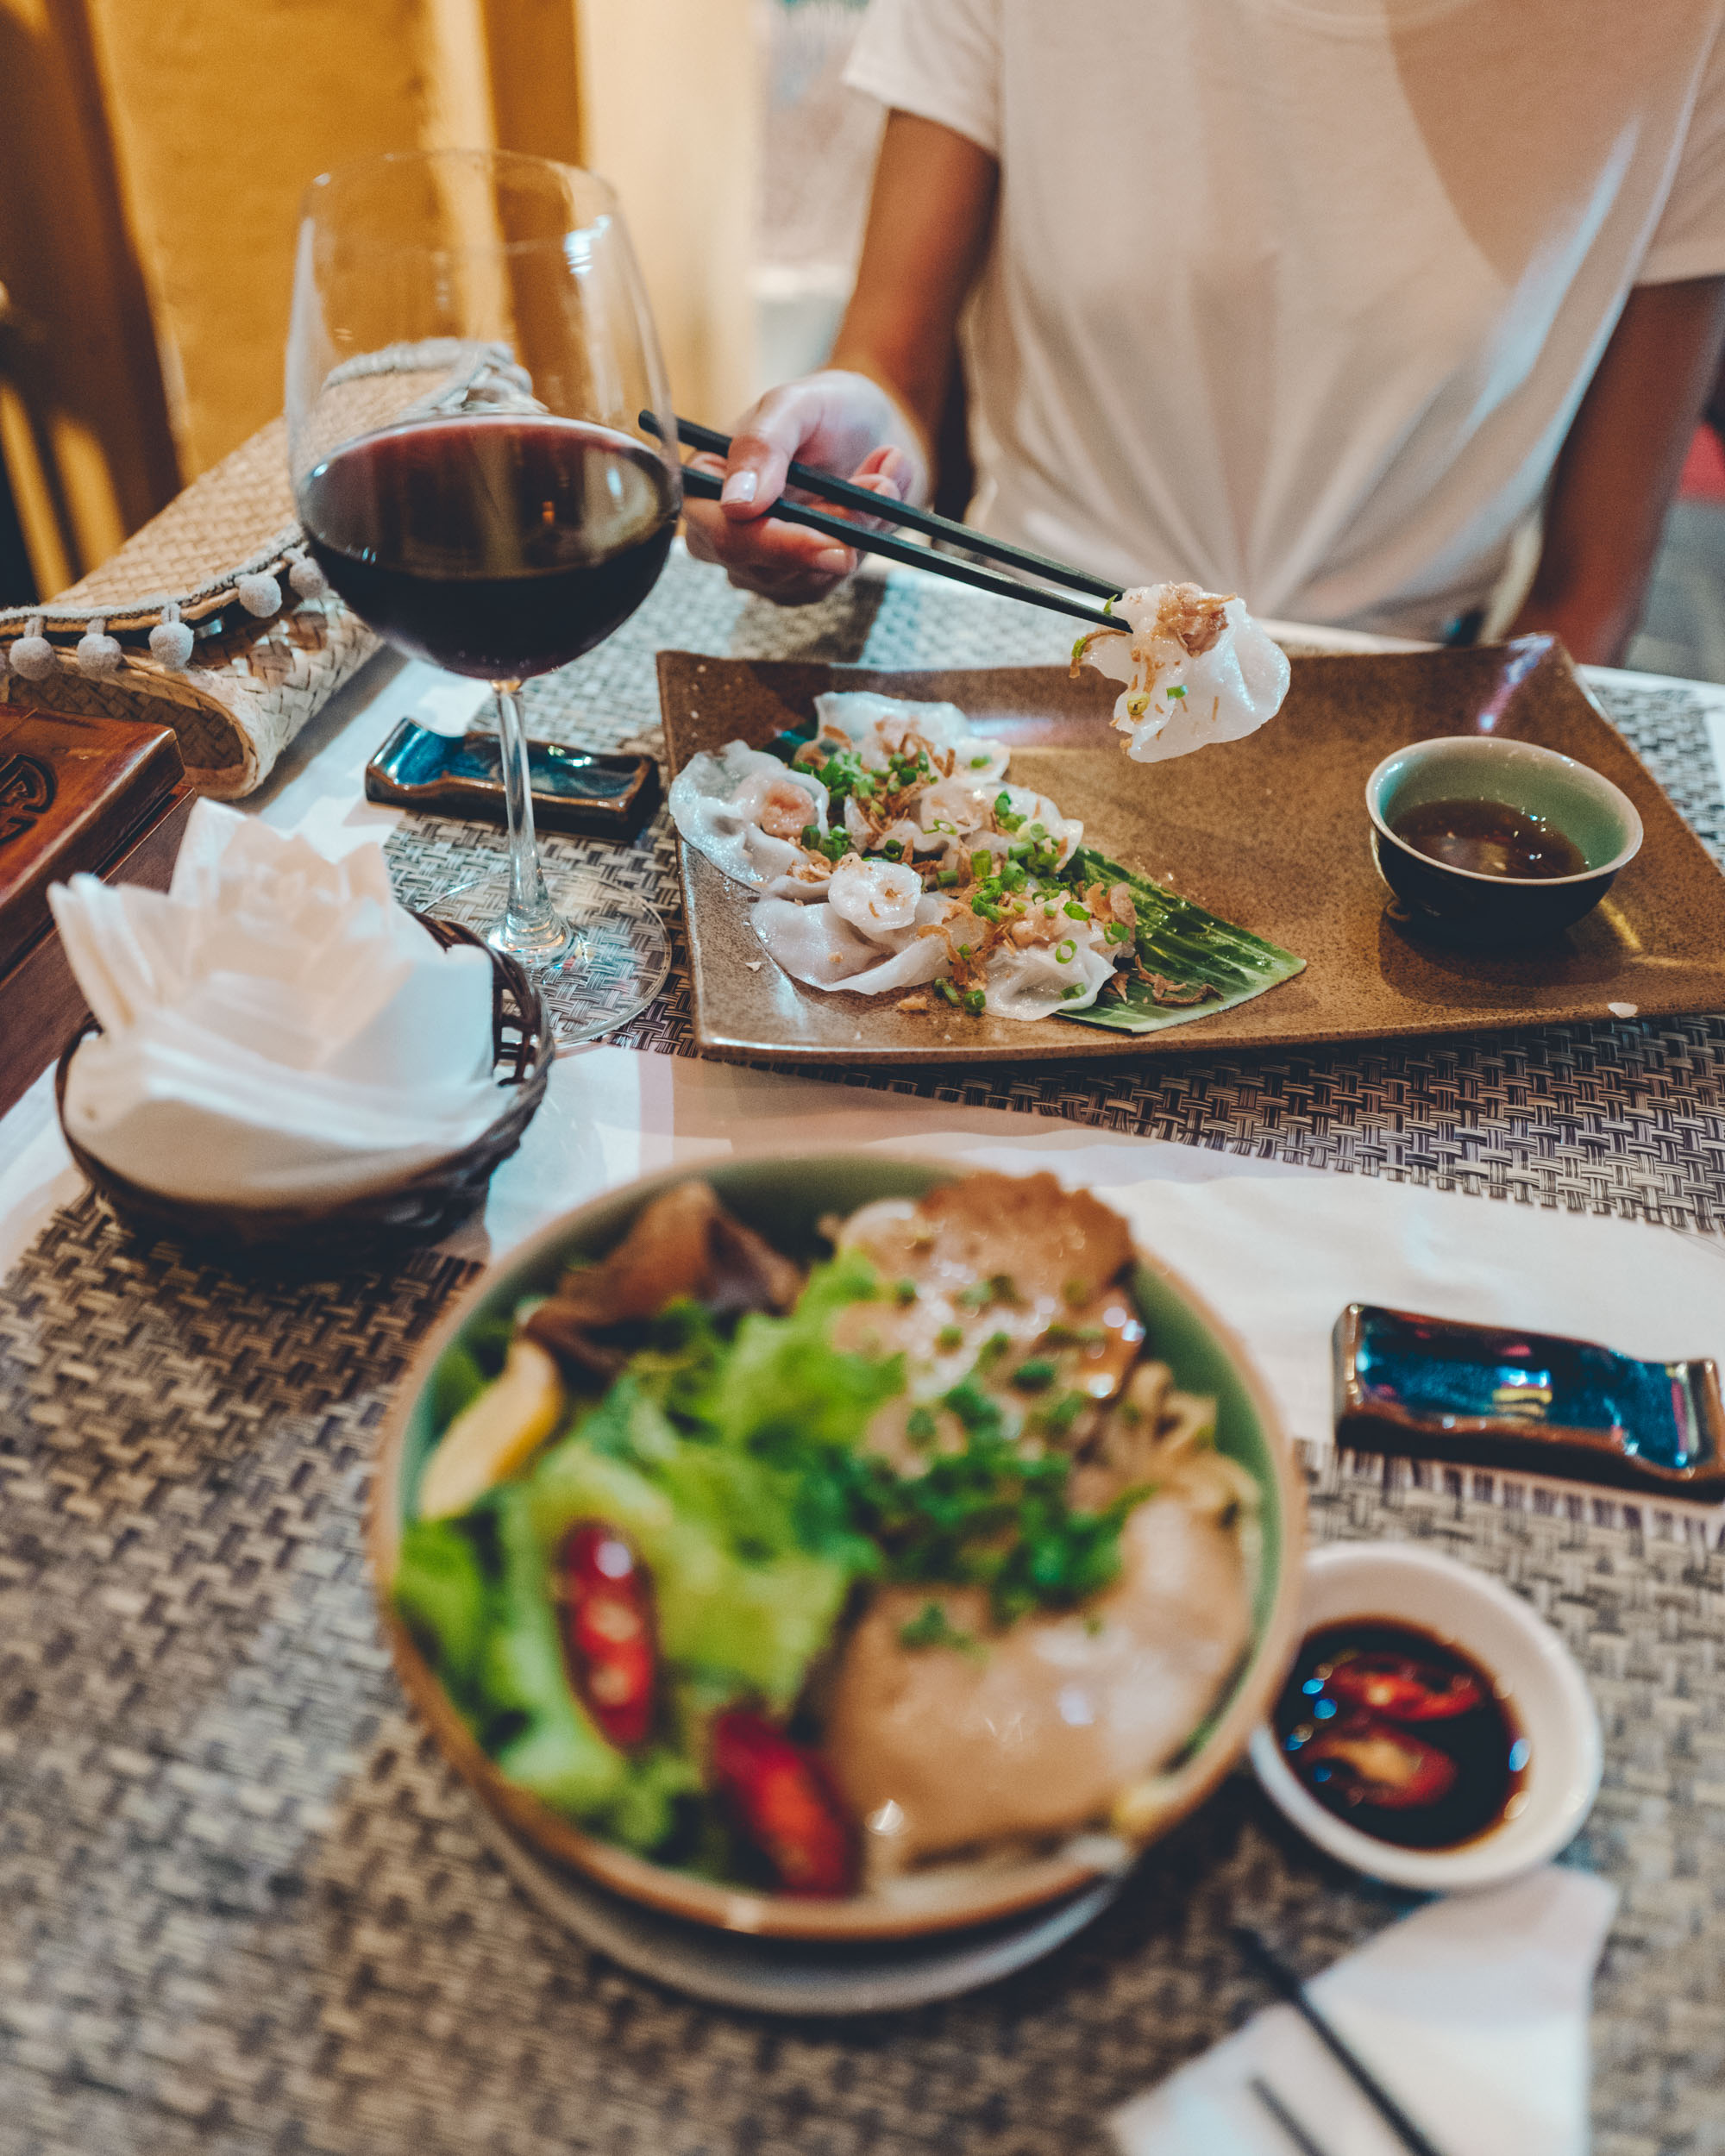 Cao Lao and rose dumplings in Hoi An Vietnam